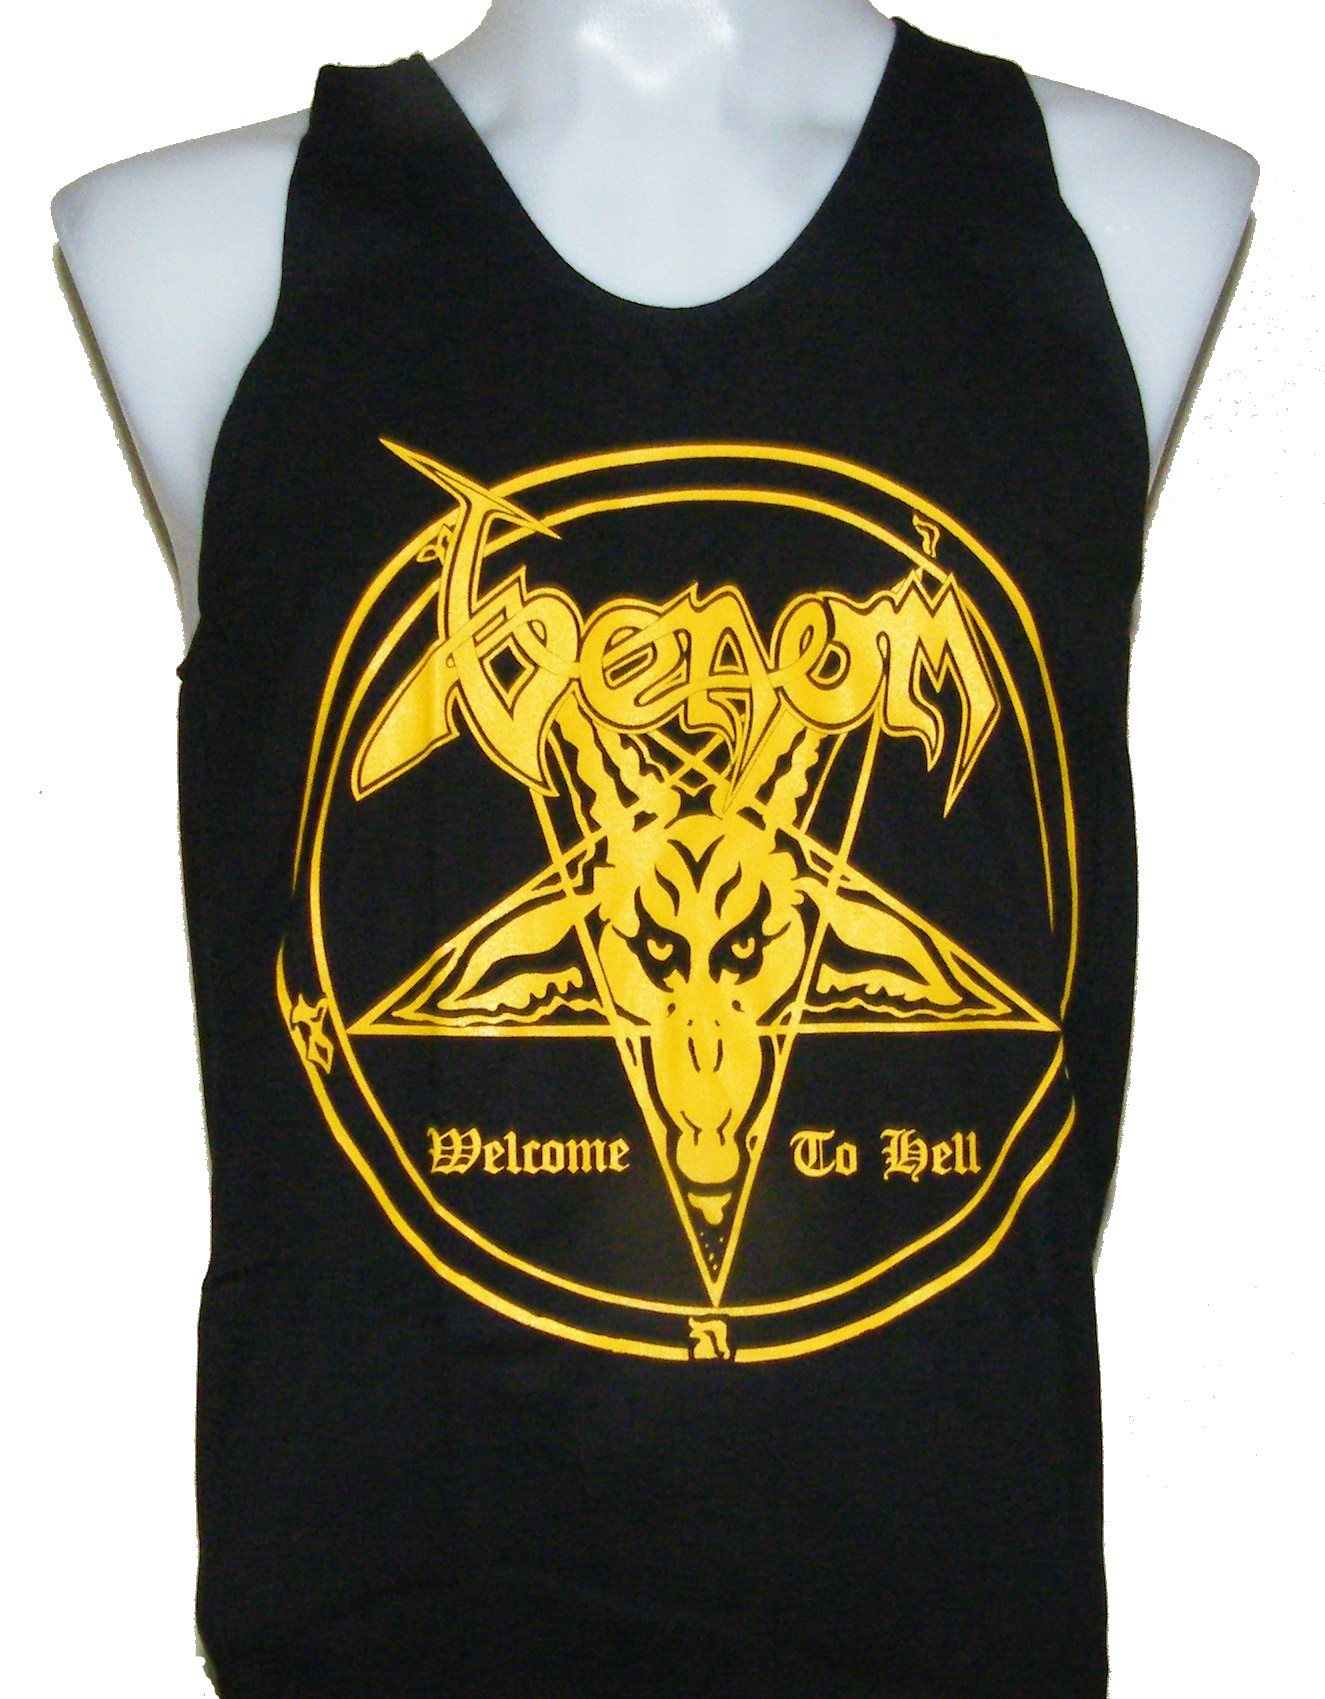 Kleidung & Accessoires T-shirts Welcome To Hell T-shirt Venom